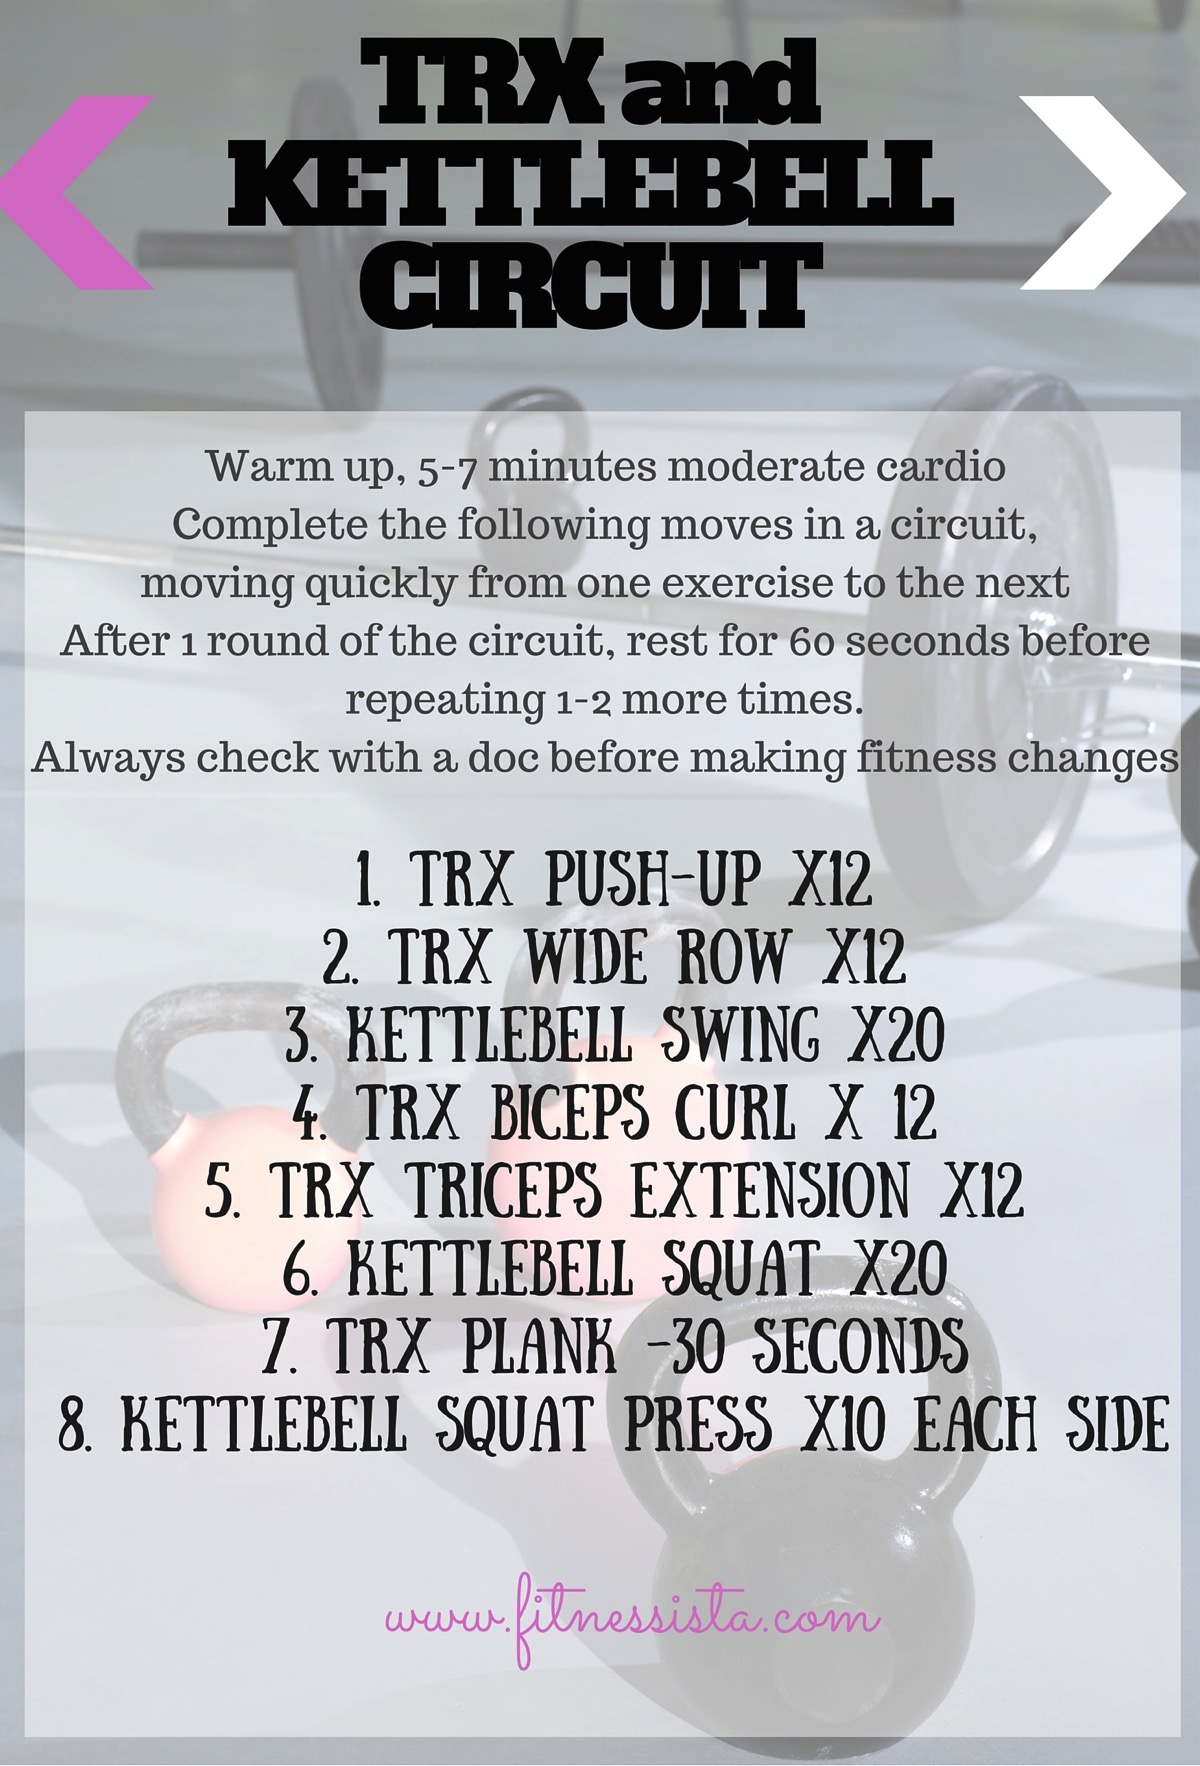 TRX and KETTLEBELLCIRCUIT 2